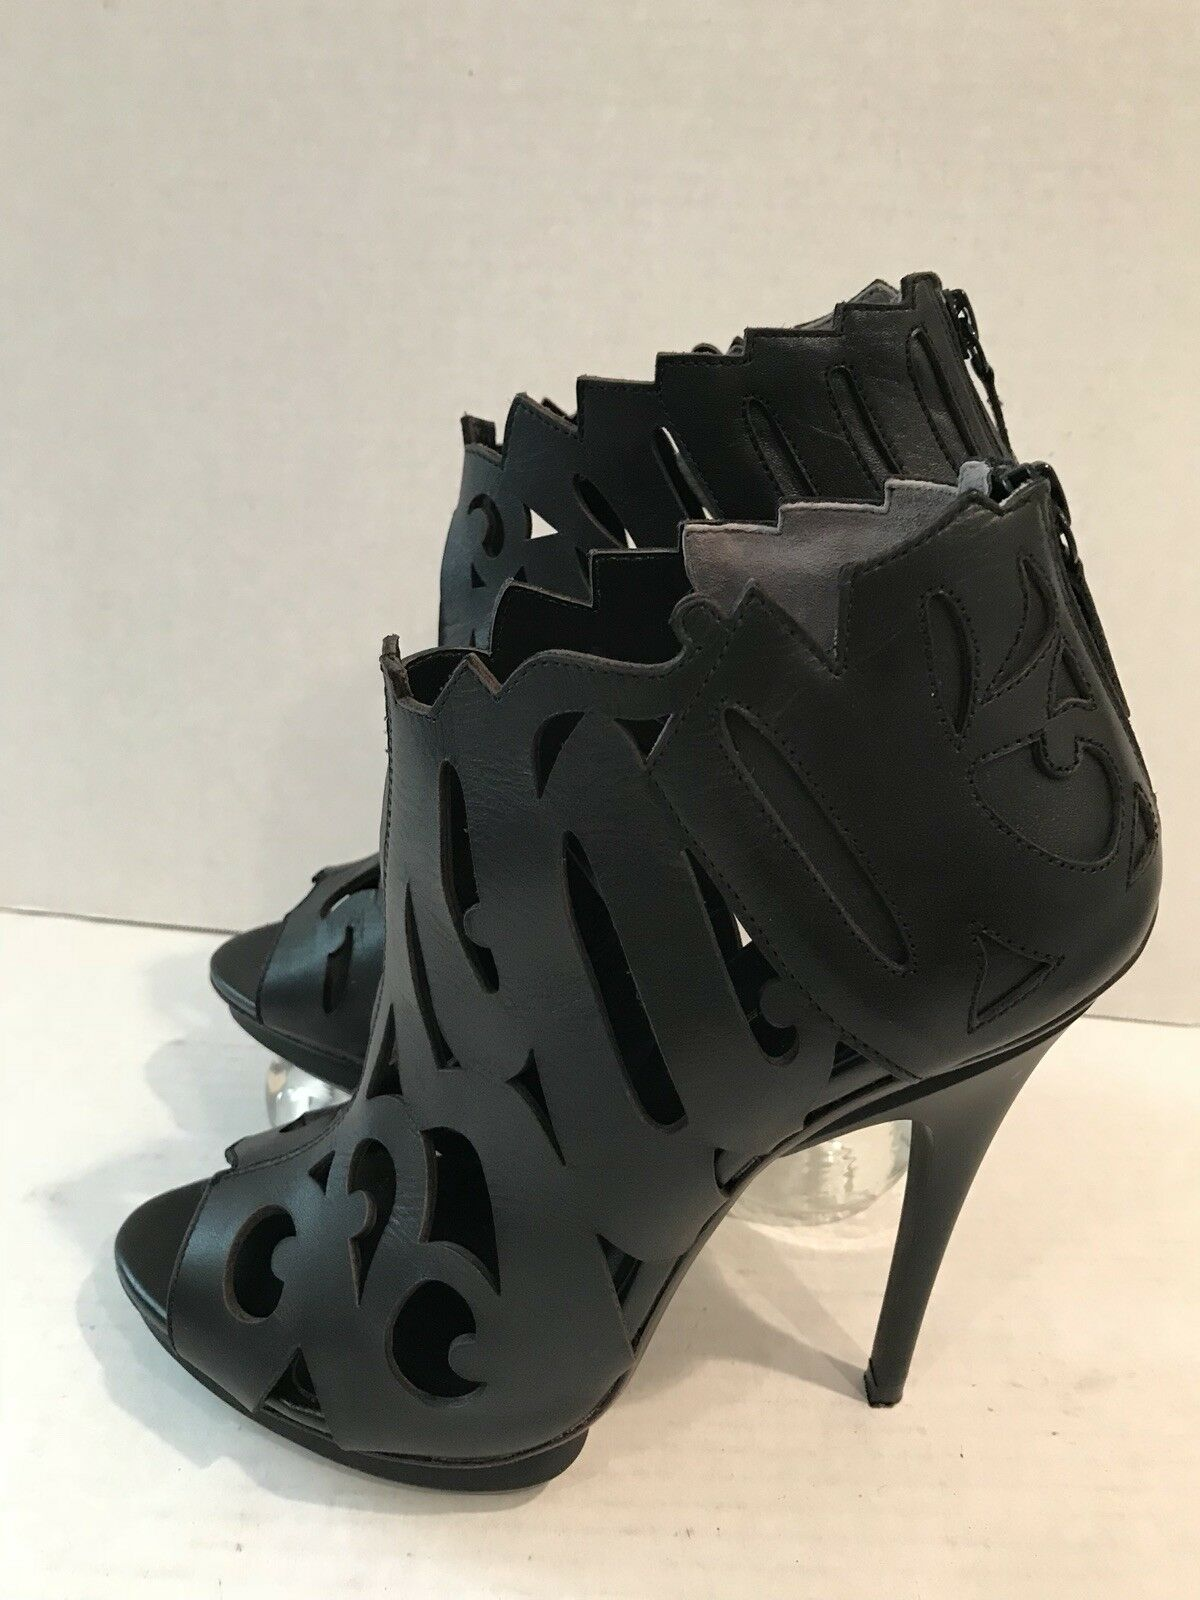 United Nude Womens High Heel Ankle Booties Black Leather Size 39 EUR 8.5 US